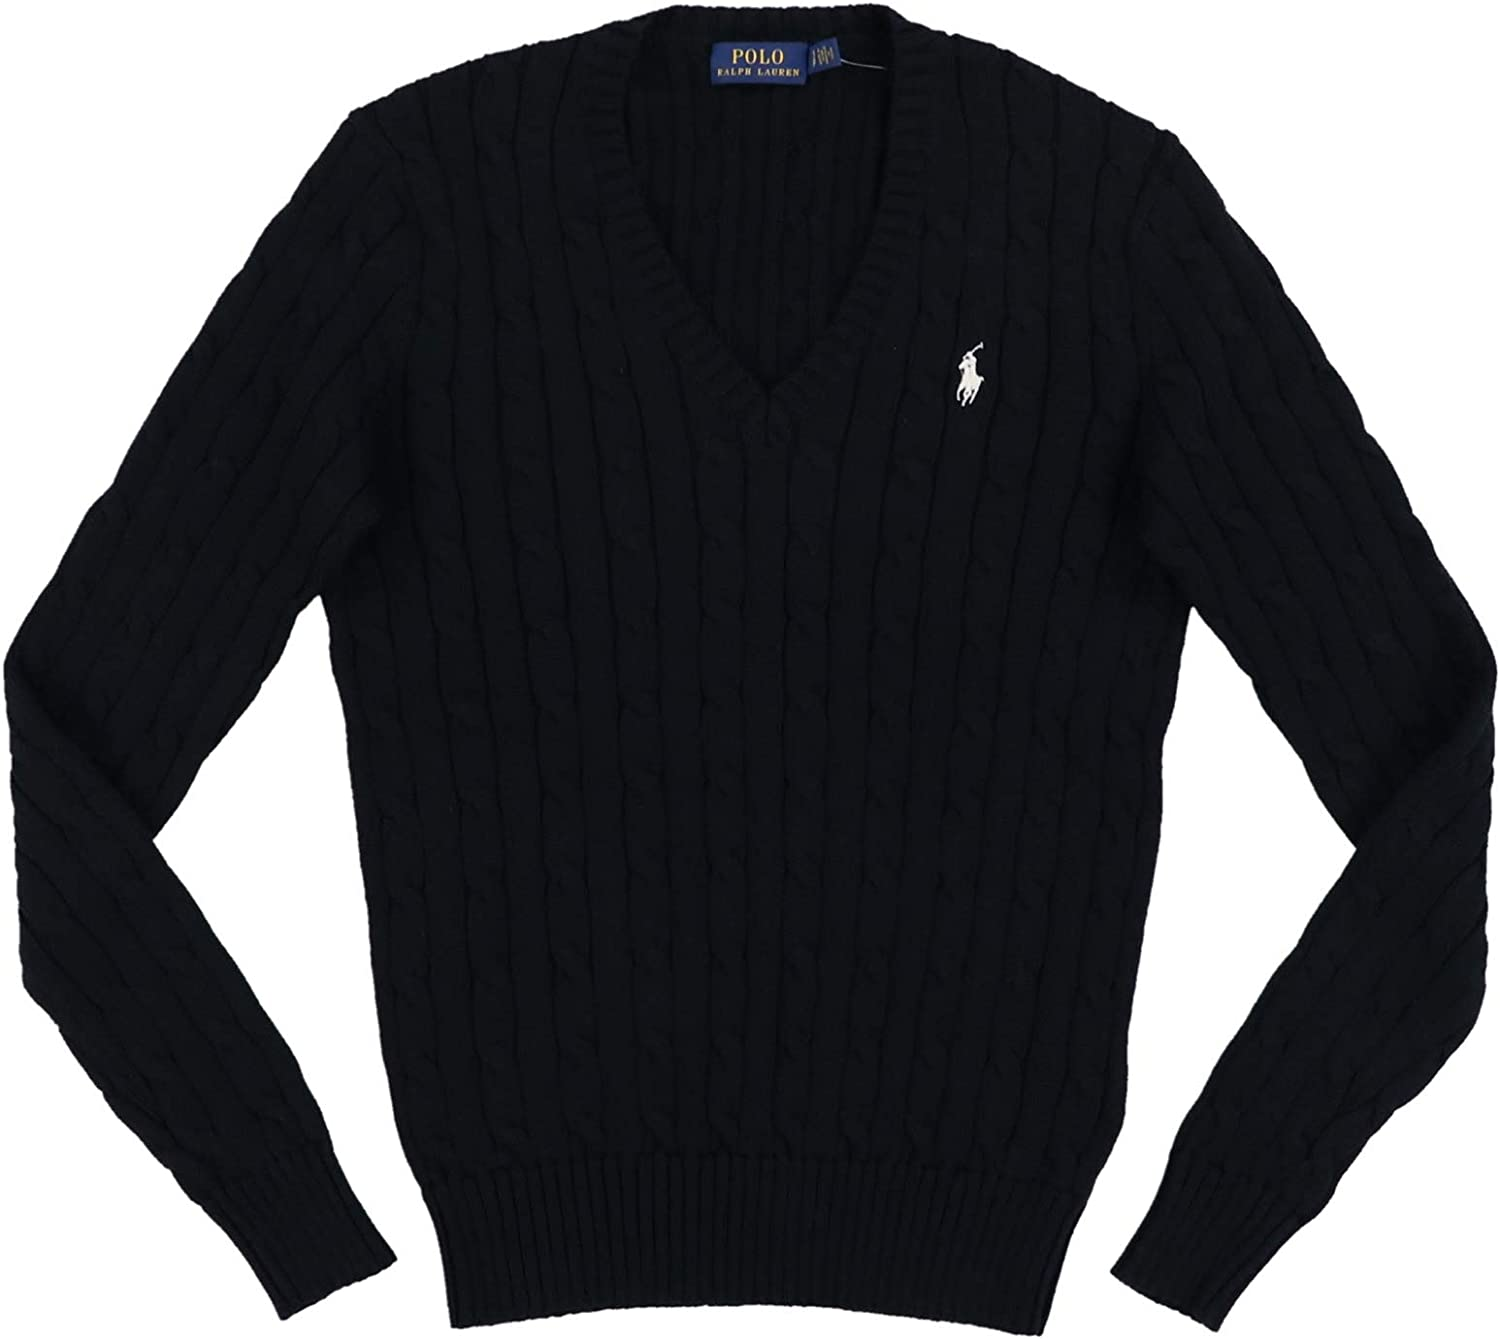 Polo Ralph Lauren Womens Cable Knit V-Neck Sweater